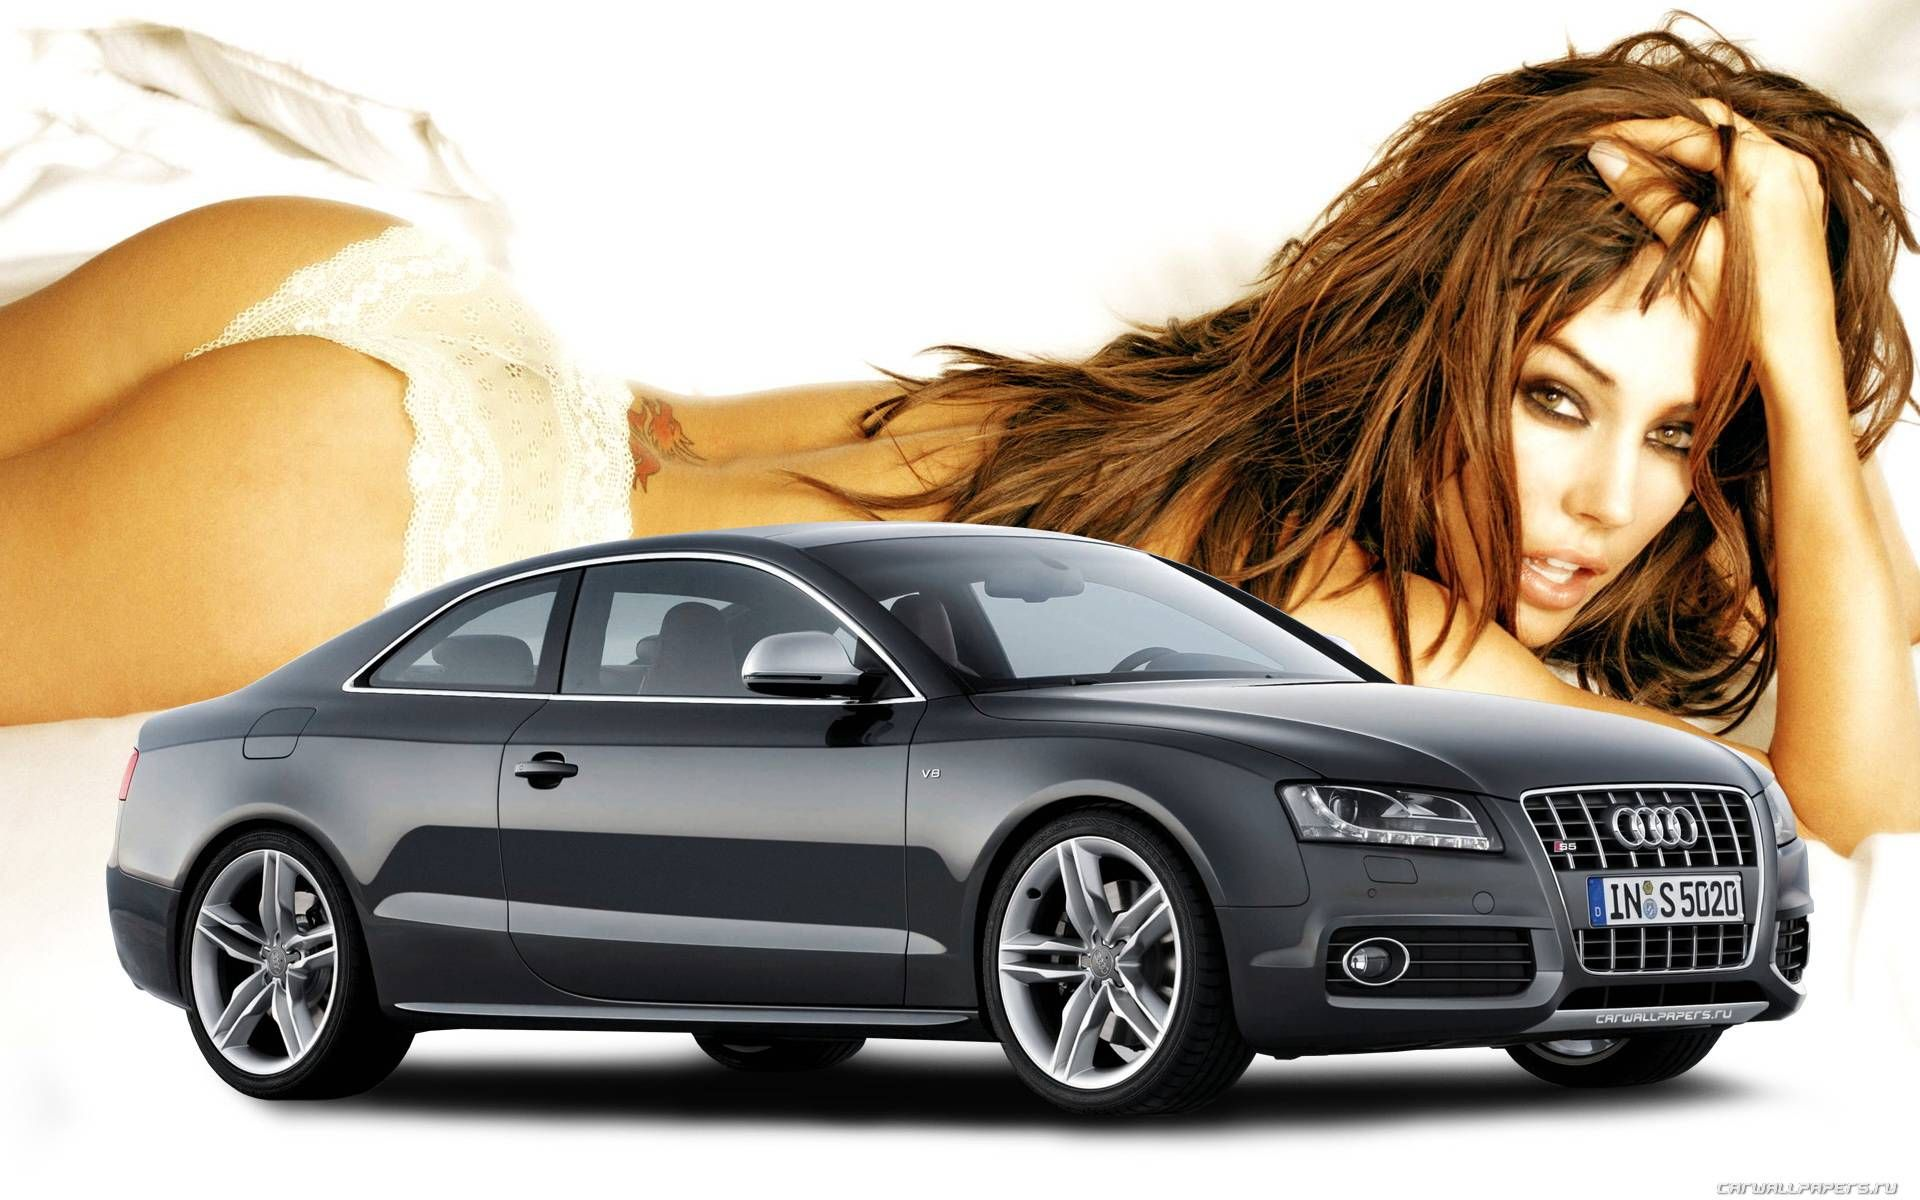 audi Hot Cars  Home » Car pictures » Cars with Girls wallpapers  Photography by cars